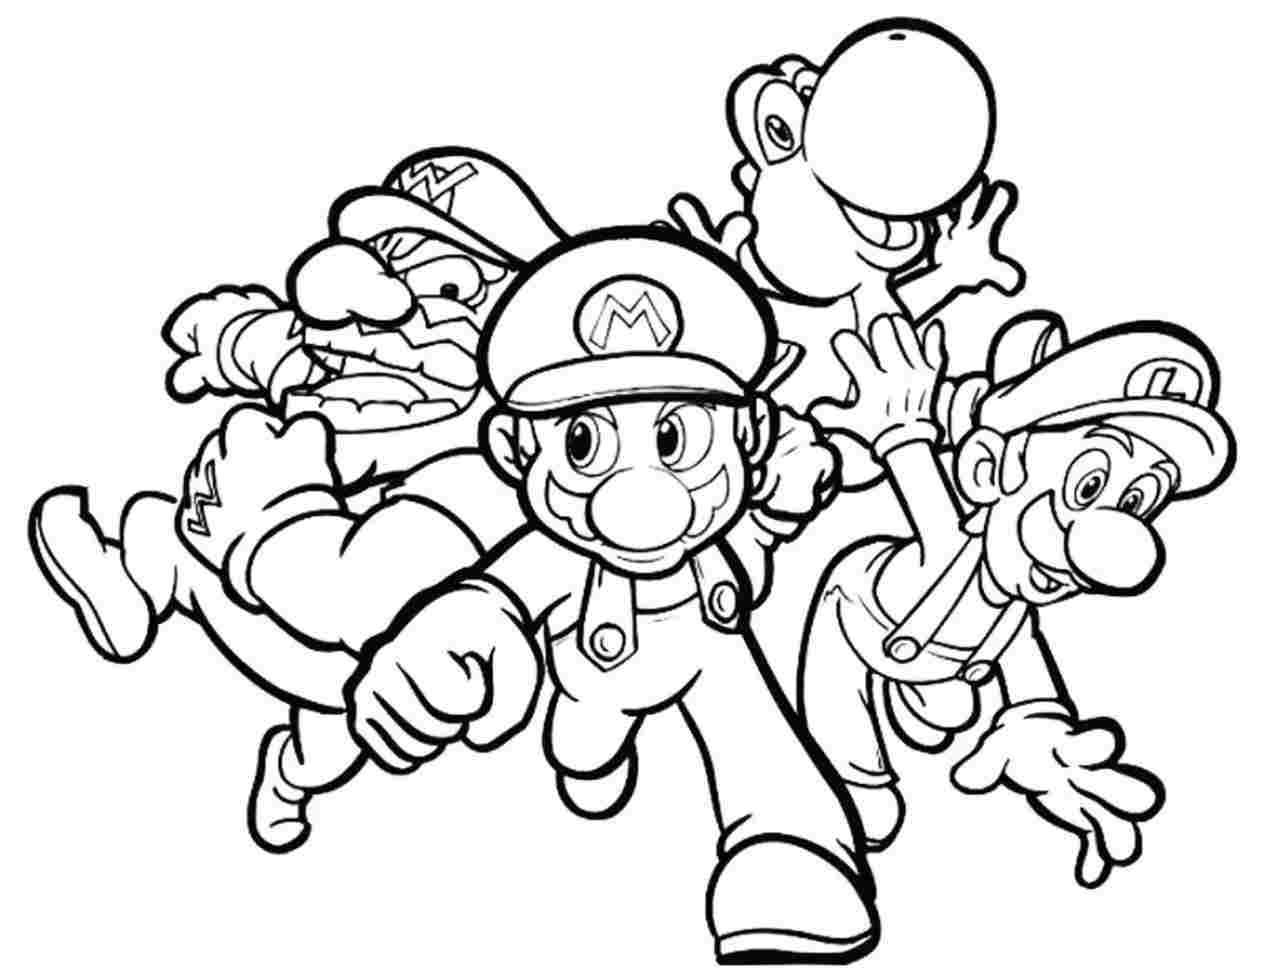 1264x980 Video Games Games Drawing New How To Draw Game Characters